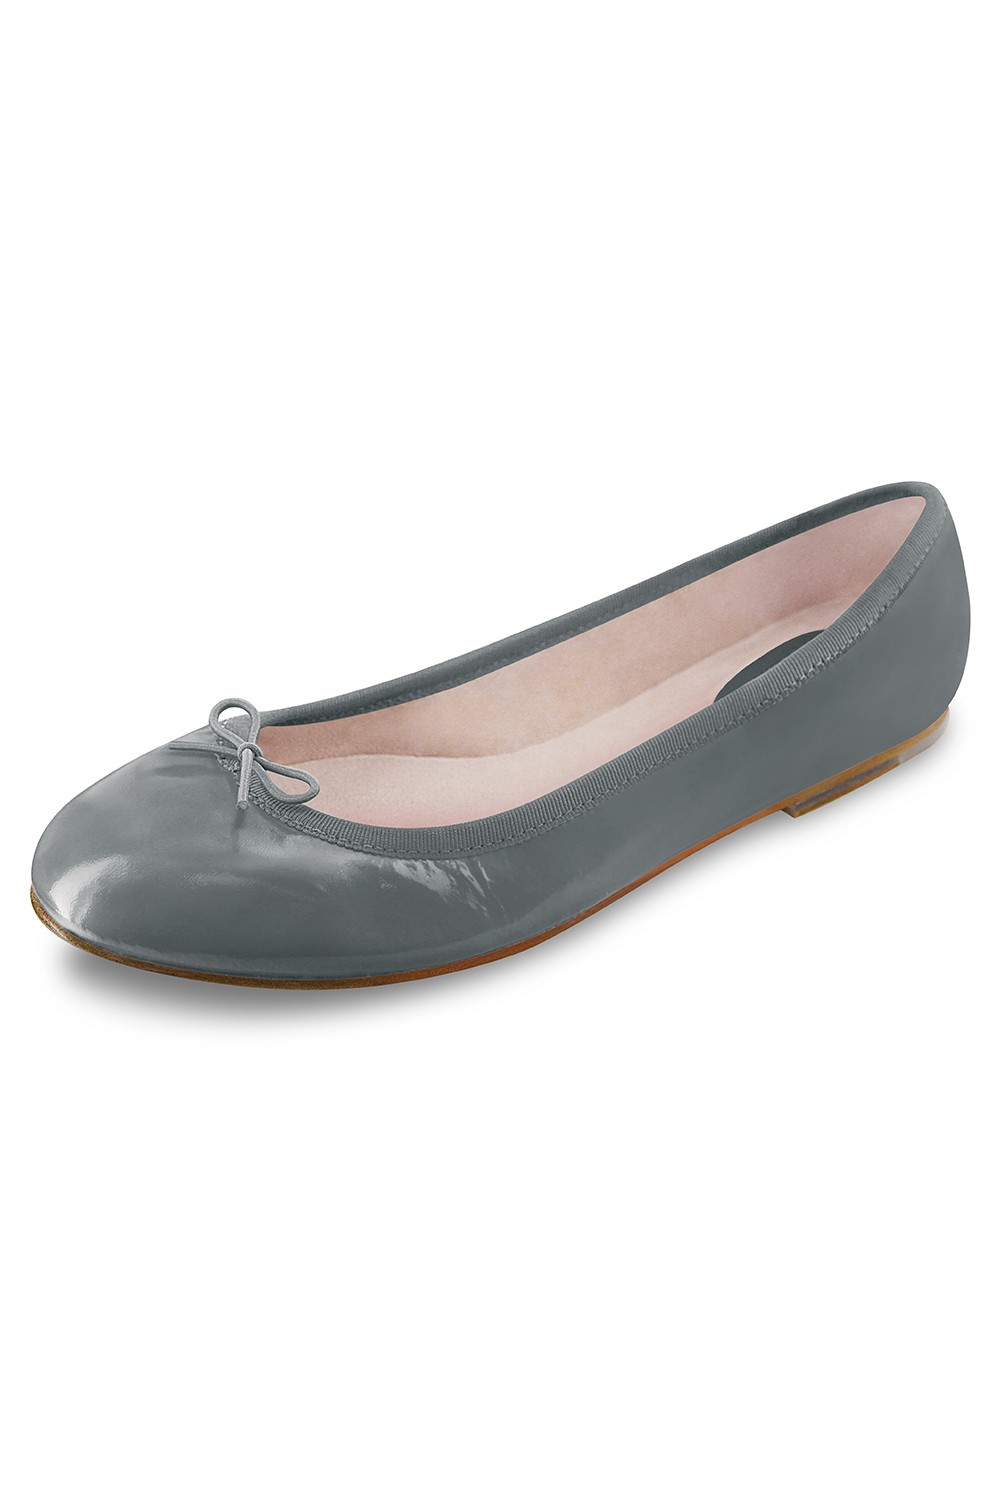 Patent Ballerina Flats Womens Fashion Shoes